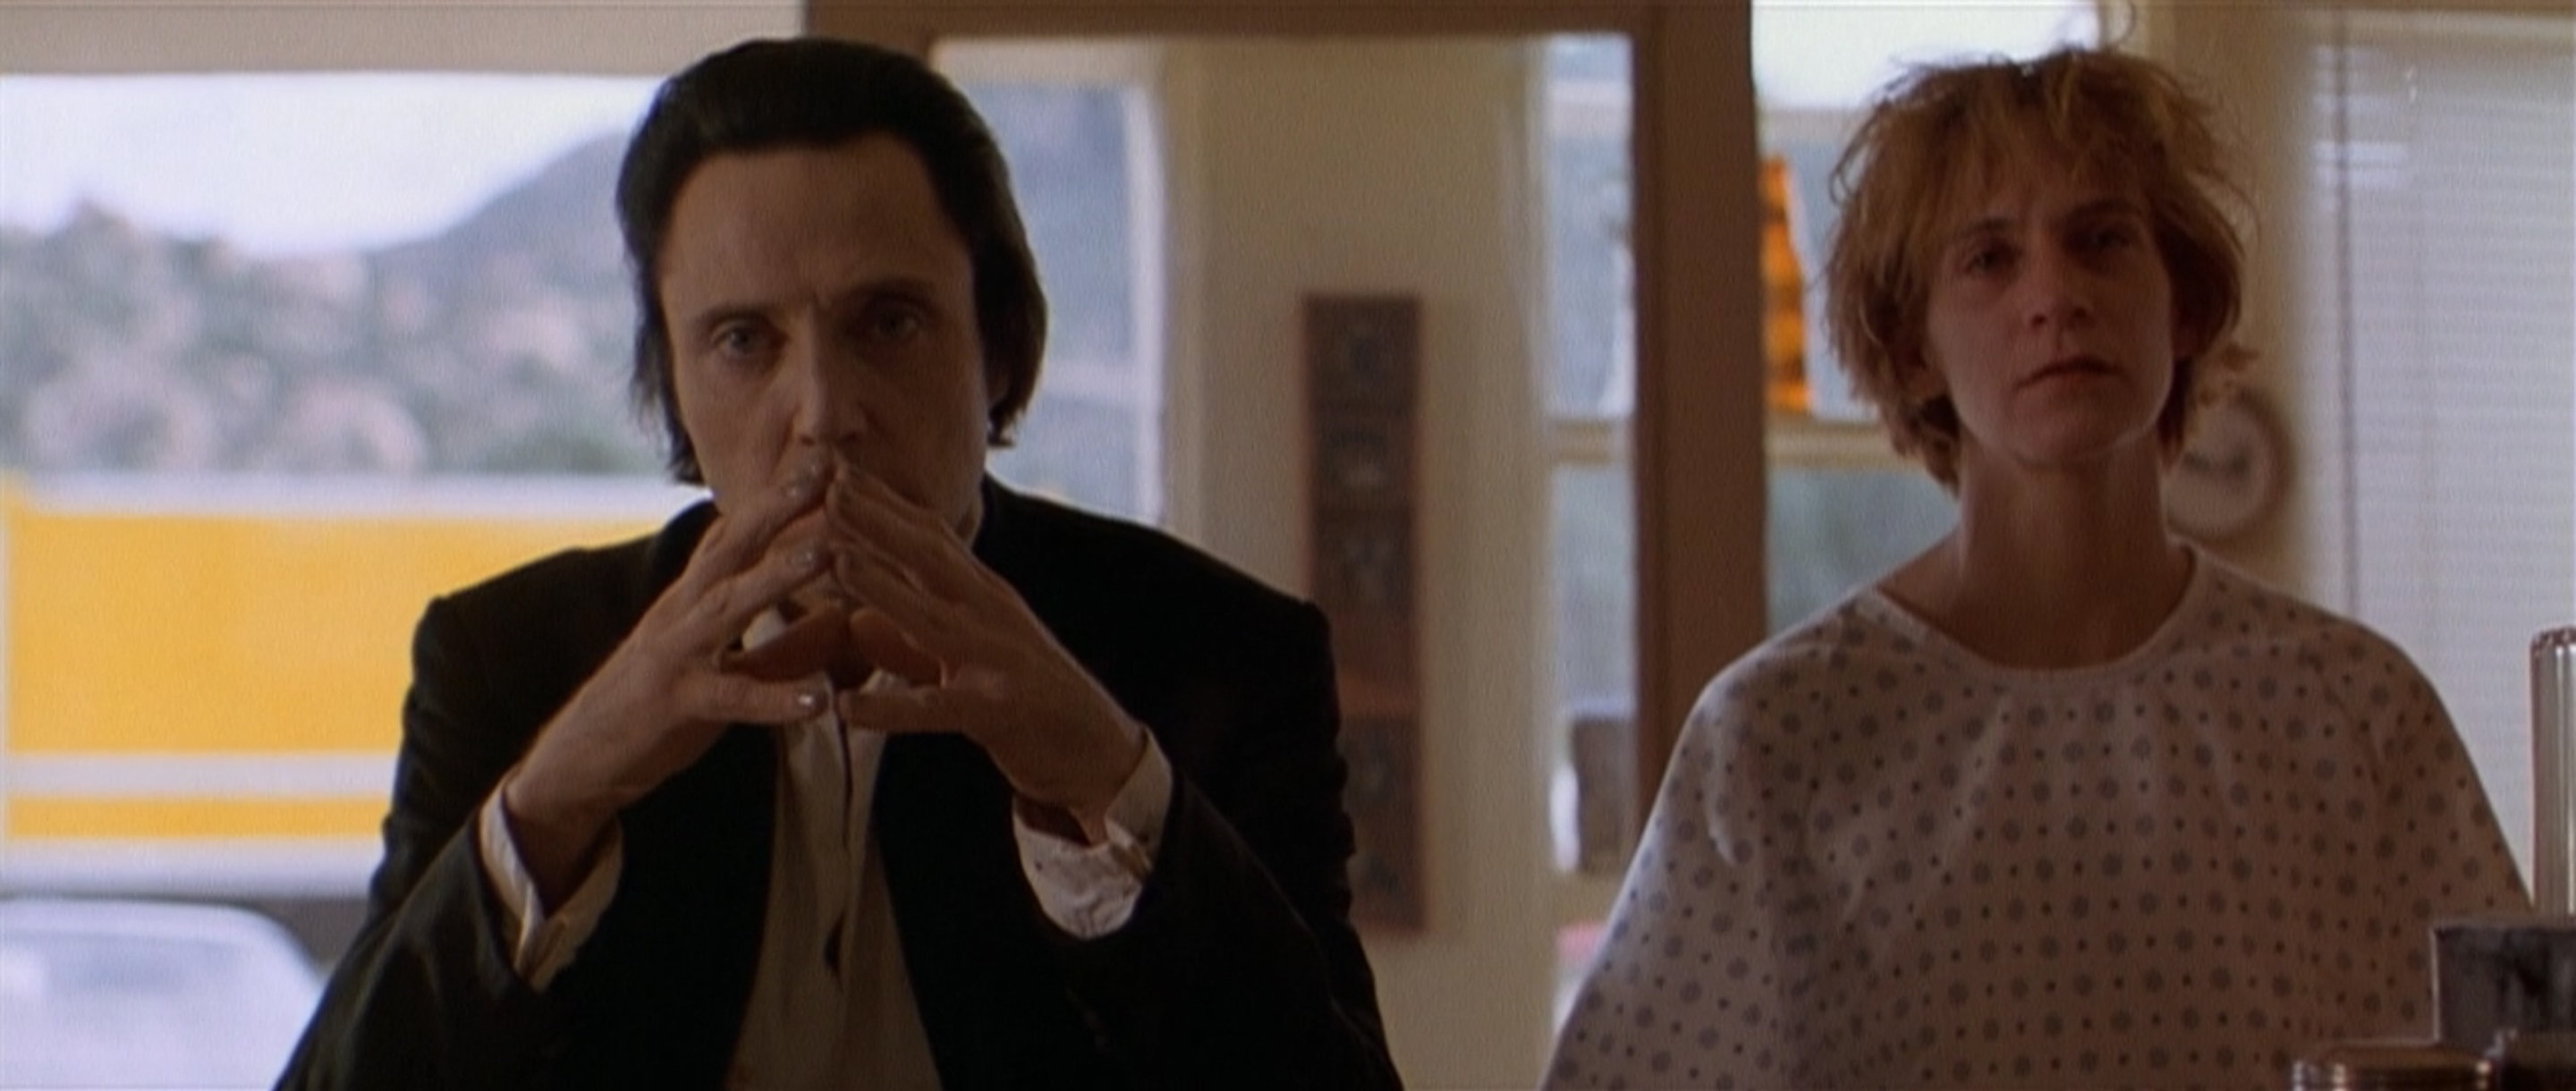 Christopher Walken as the archangel Gabriel and Amanda Plummer in The Prophecy, 1995